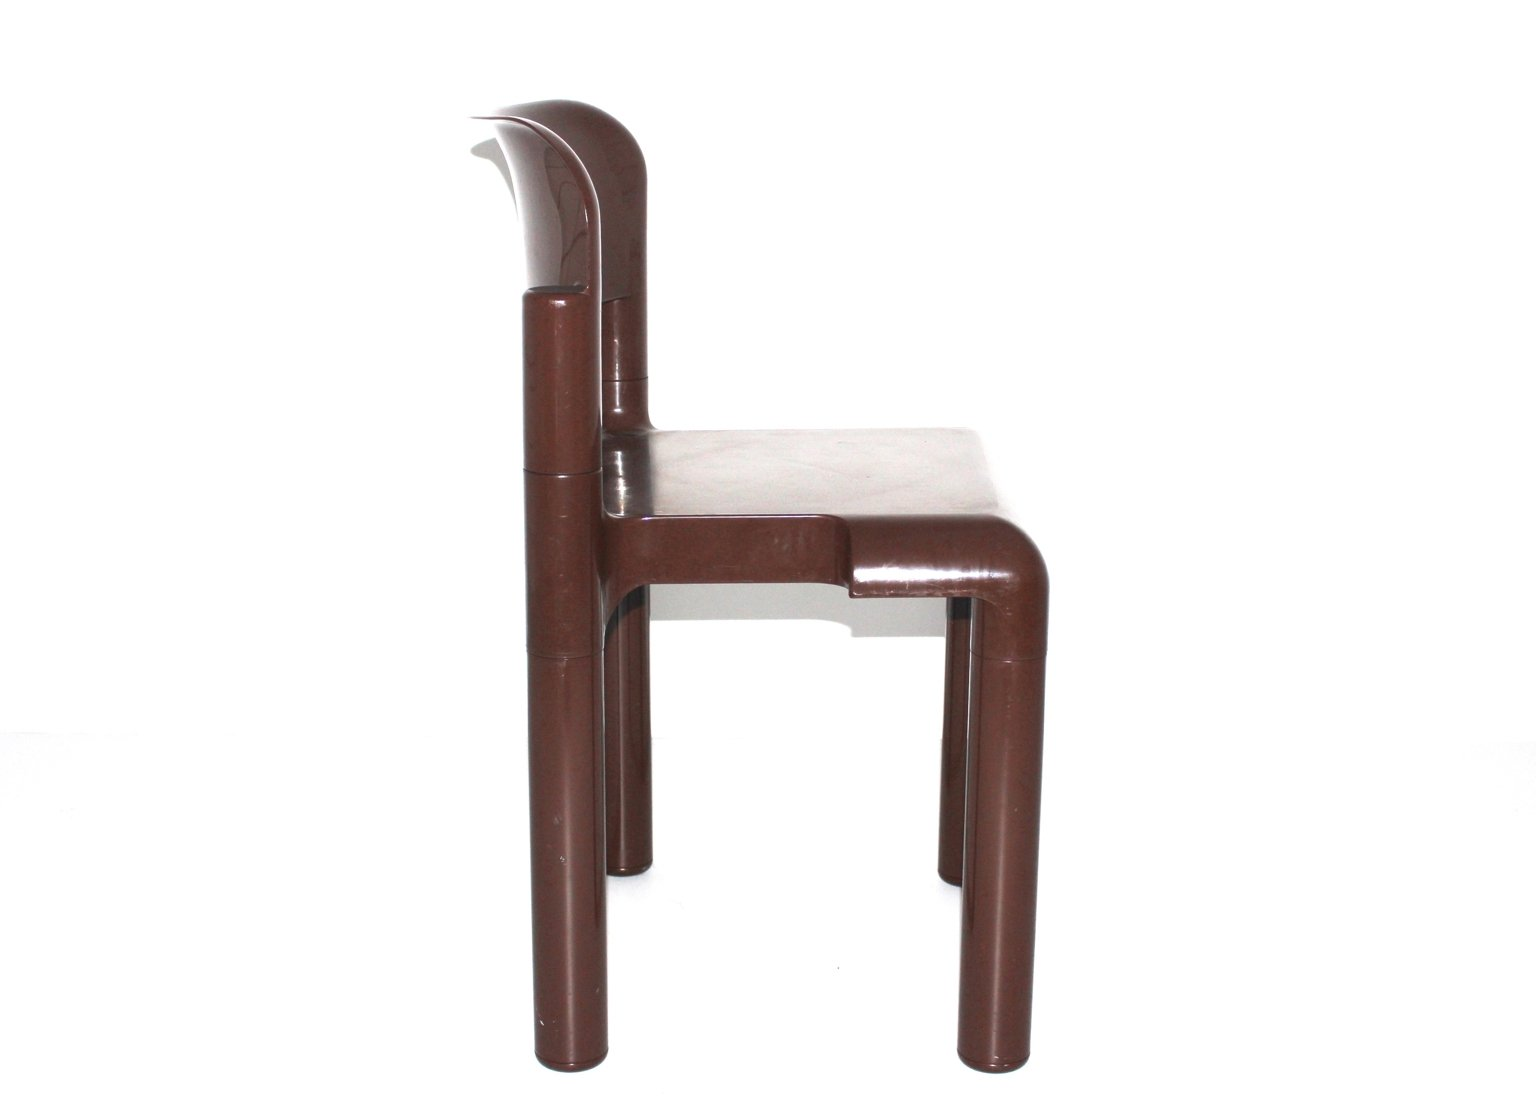 Brown Plastic Chair By Eerio Aarnio For Upo Furniture 1970s For Sale At Pamono